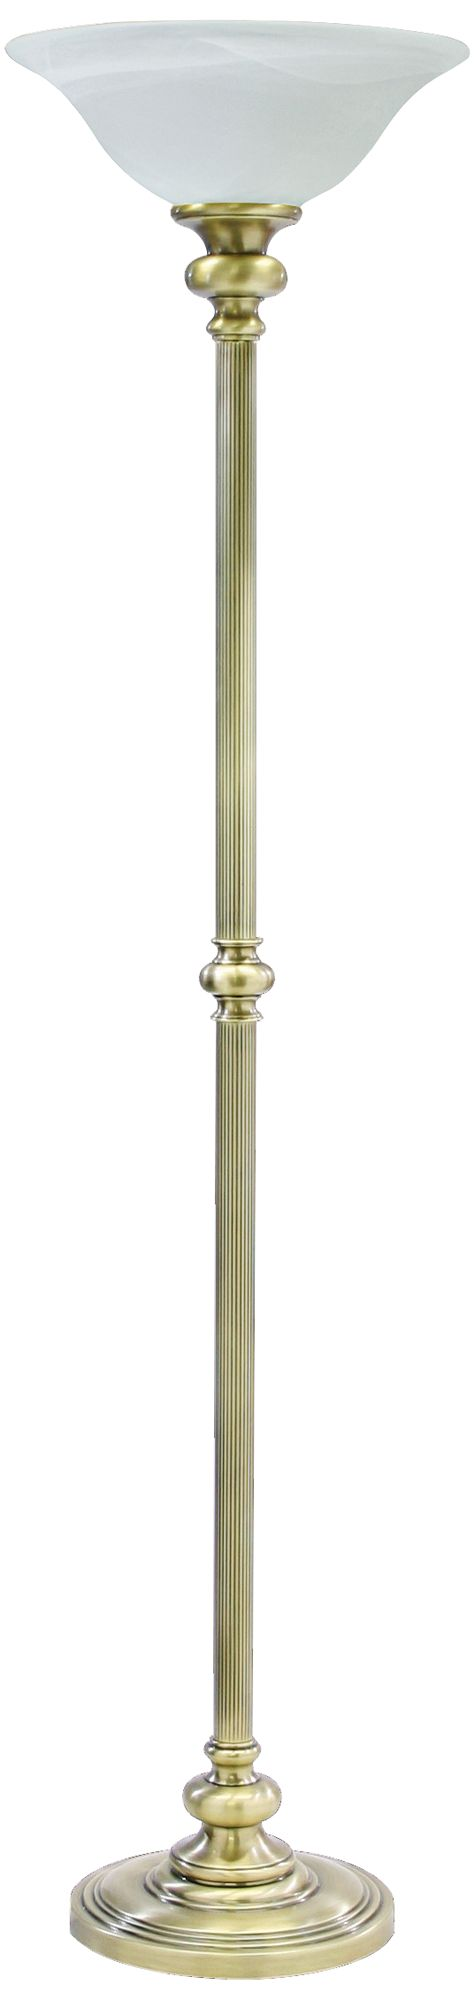 house of troy newport torchiere floor lamp in antique brass